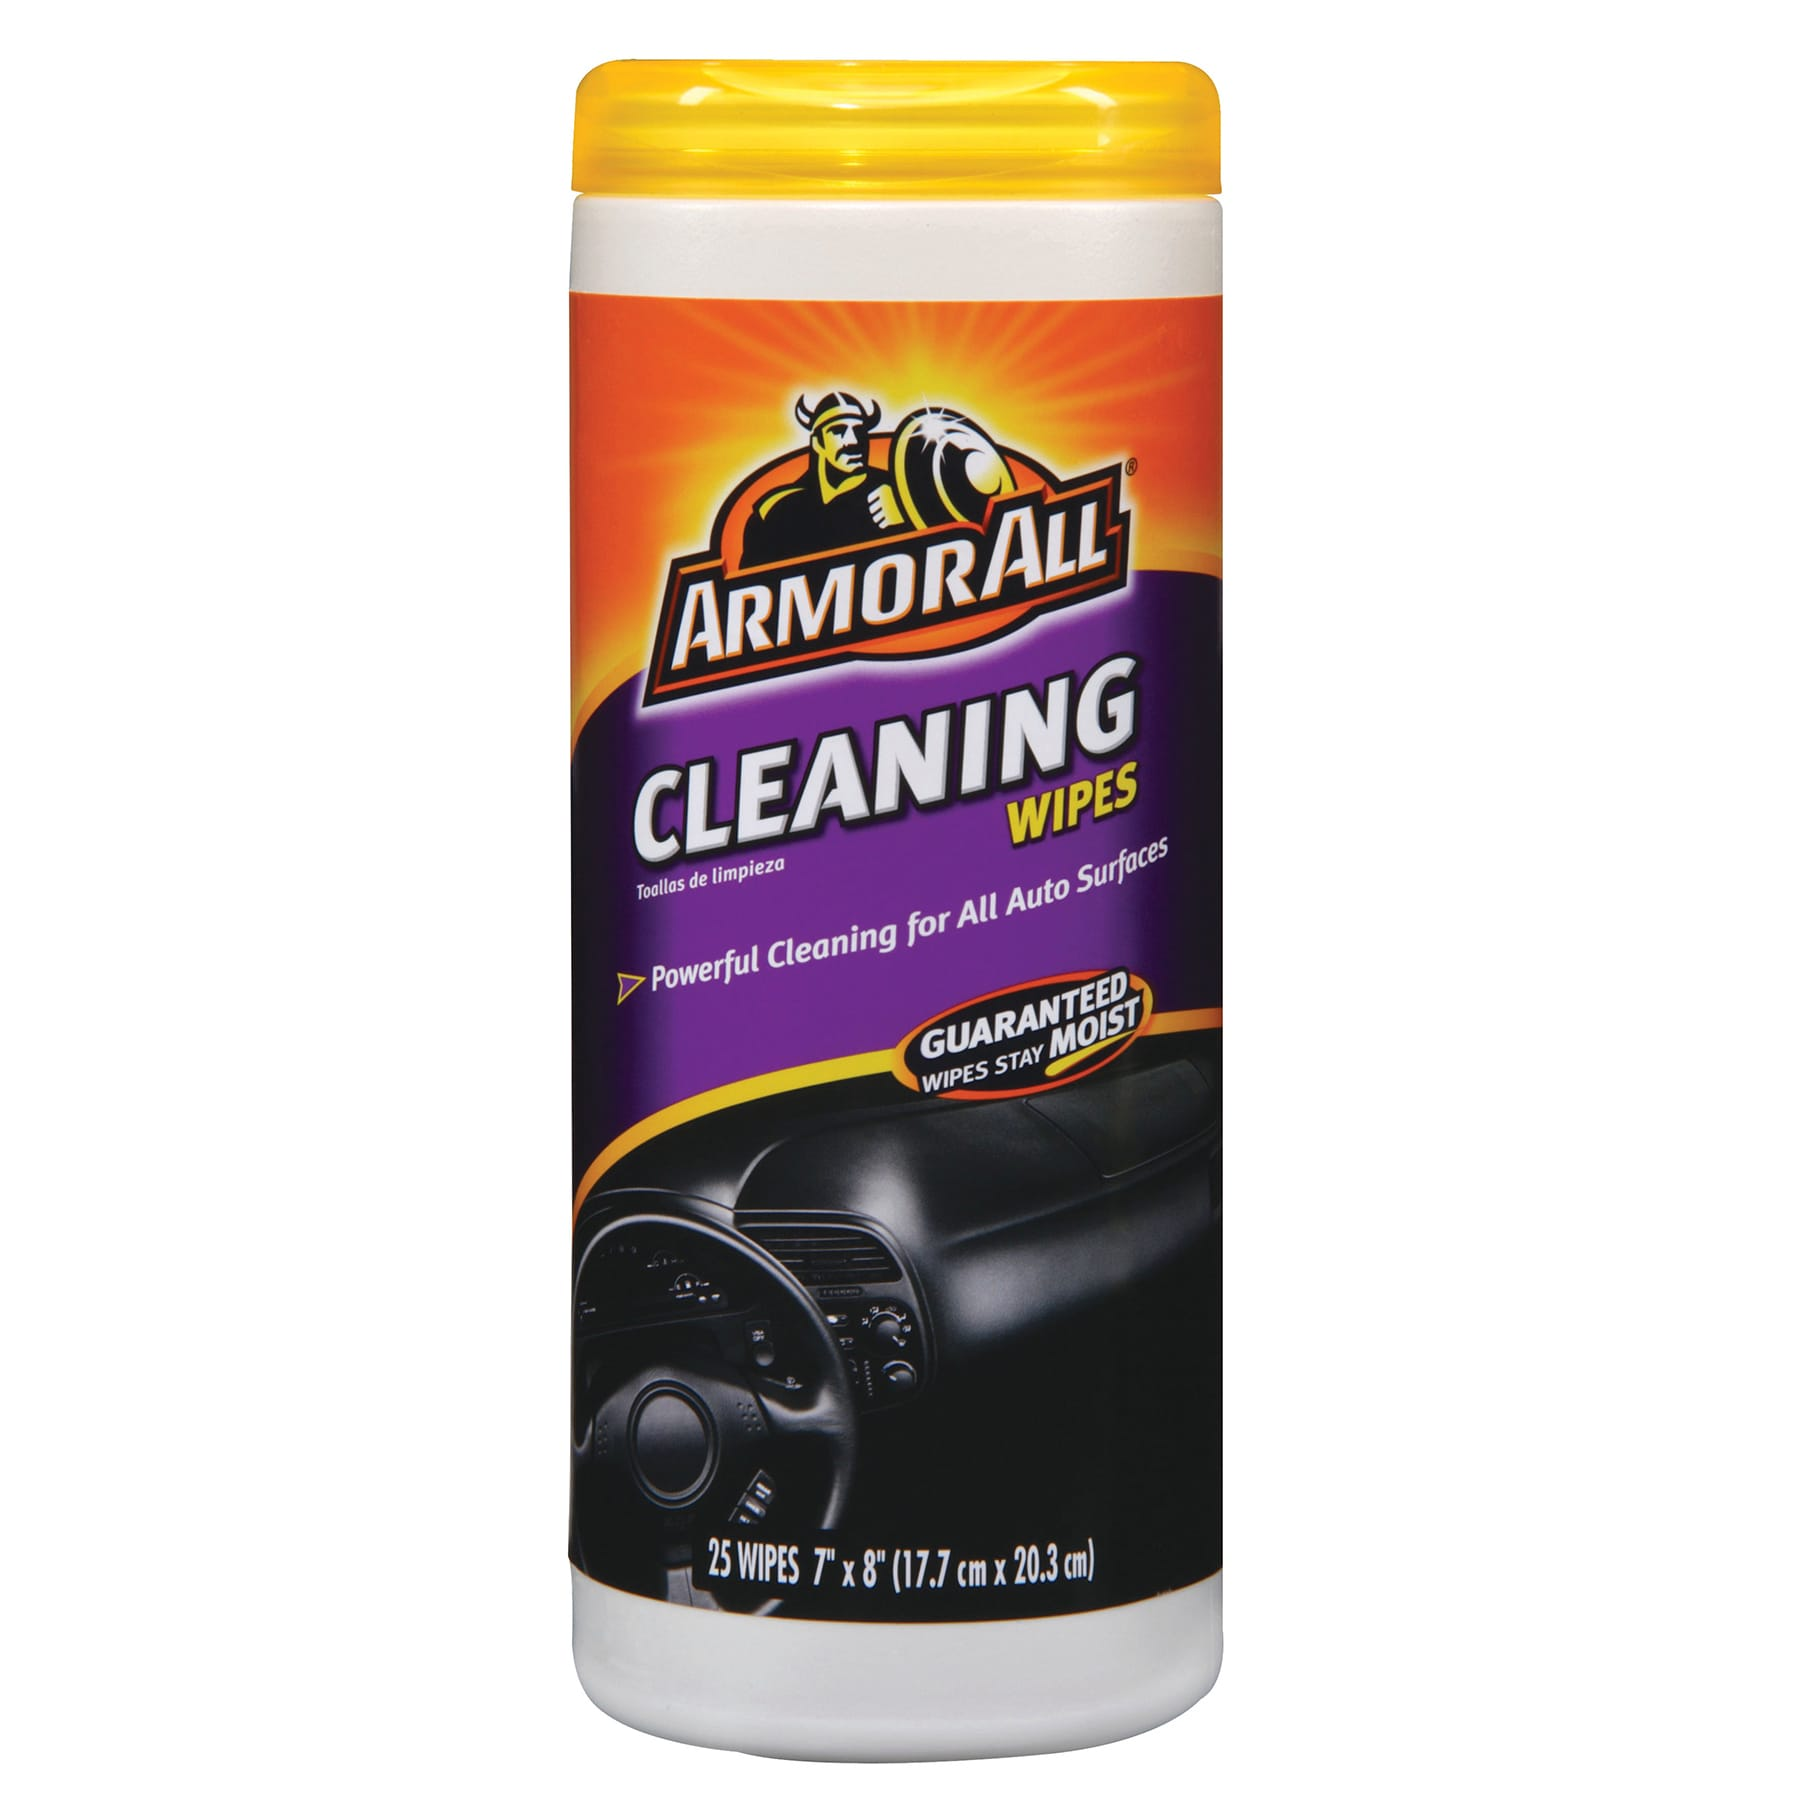 Armor All 10863 6 1/2-inch X 9-inch Armor All Cleaning Wi...